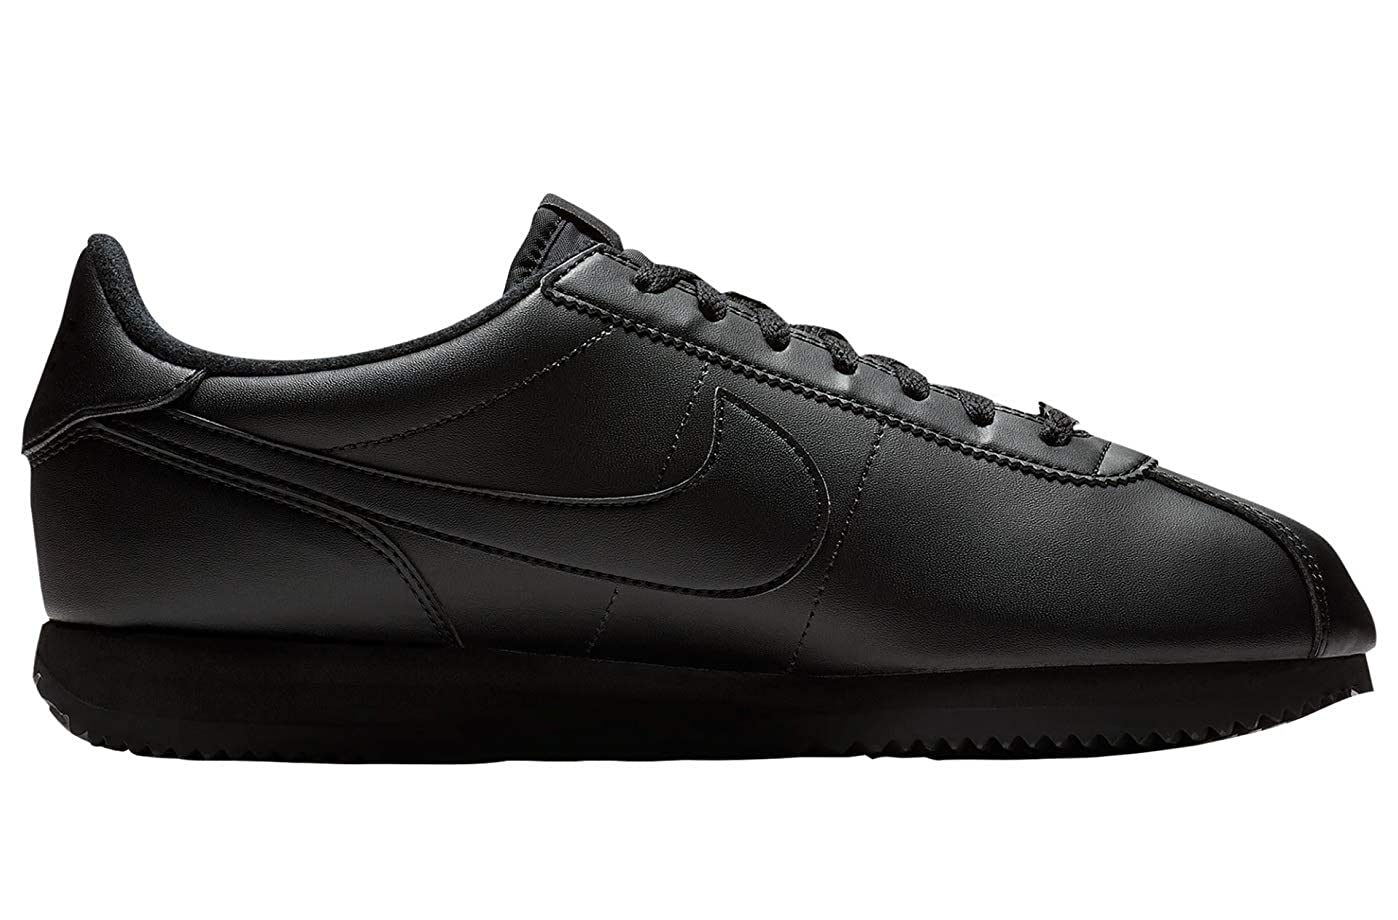 separation shoes ded8c 7a215 Amazon.com   Nike Men s Classic Cortez Leather Casual Shoe   Fashion  Sneakers